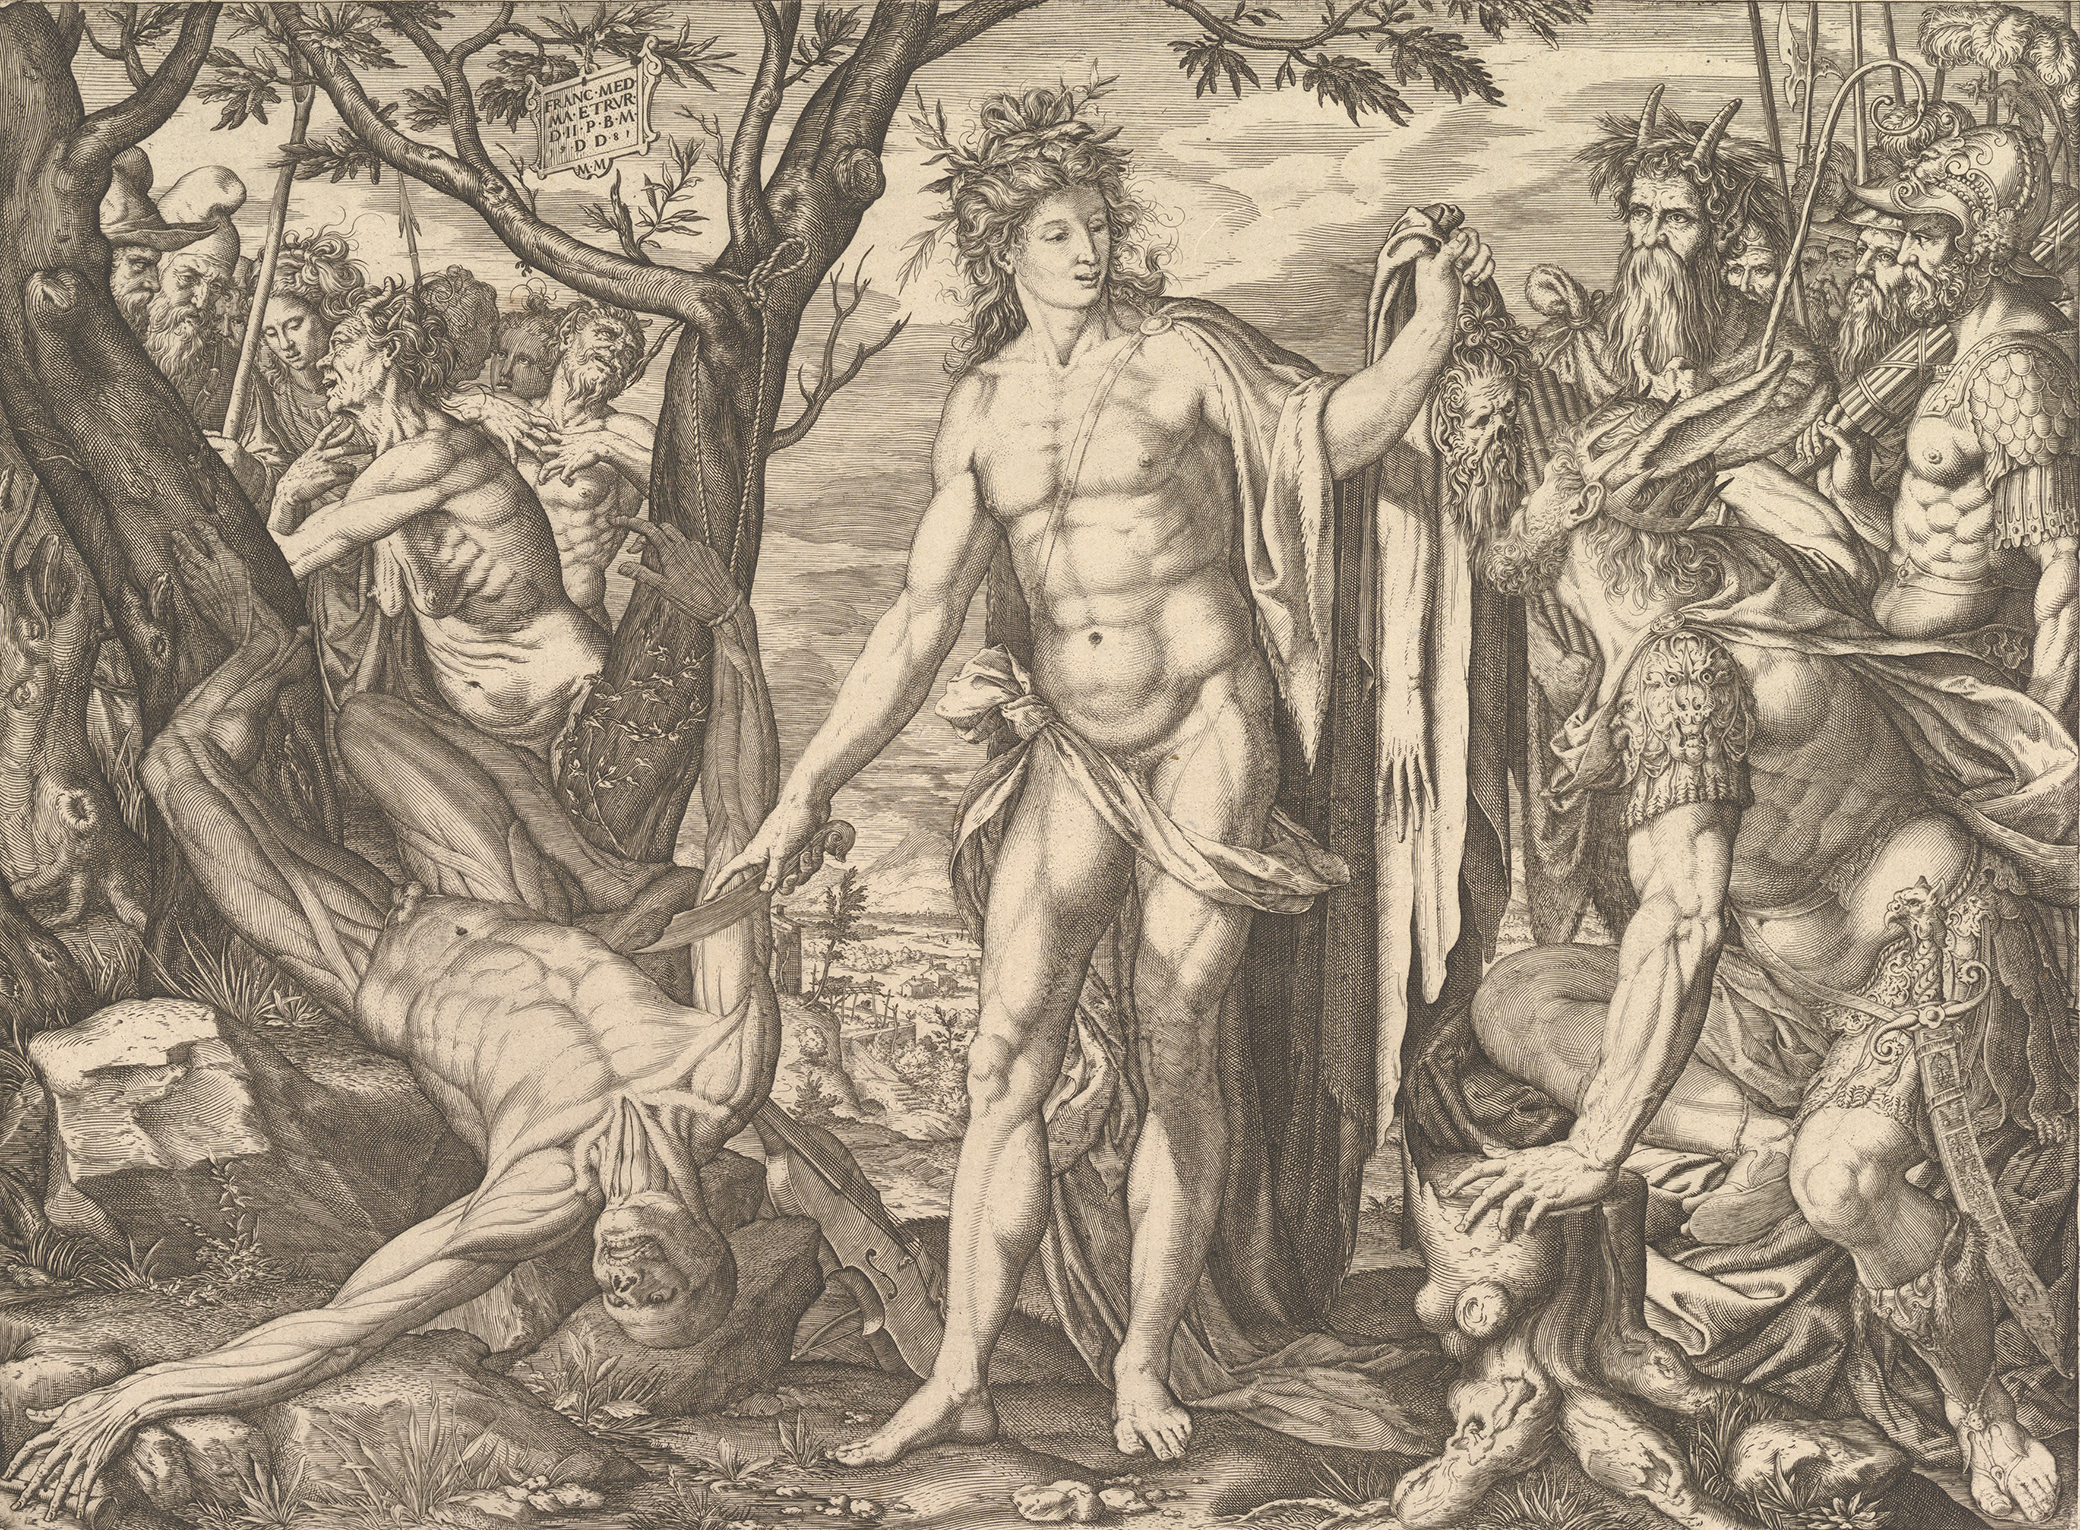 Apollo and Marsyas and the Judgment of Midas, by Melchior Meier, 1581. The Metropolitan Museum of Art, Bequest of Phyllis Massar, 2011.